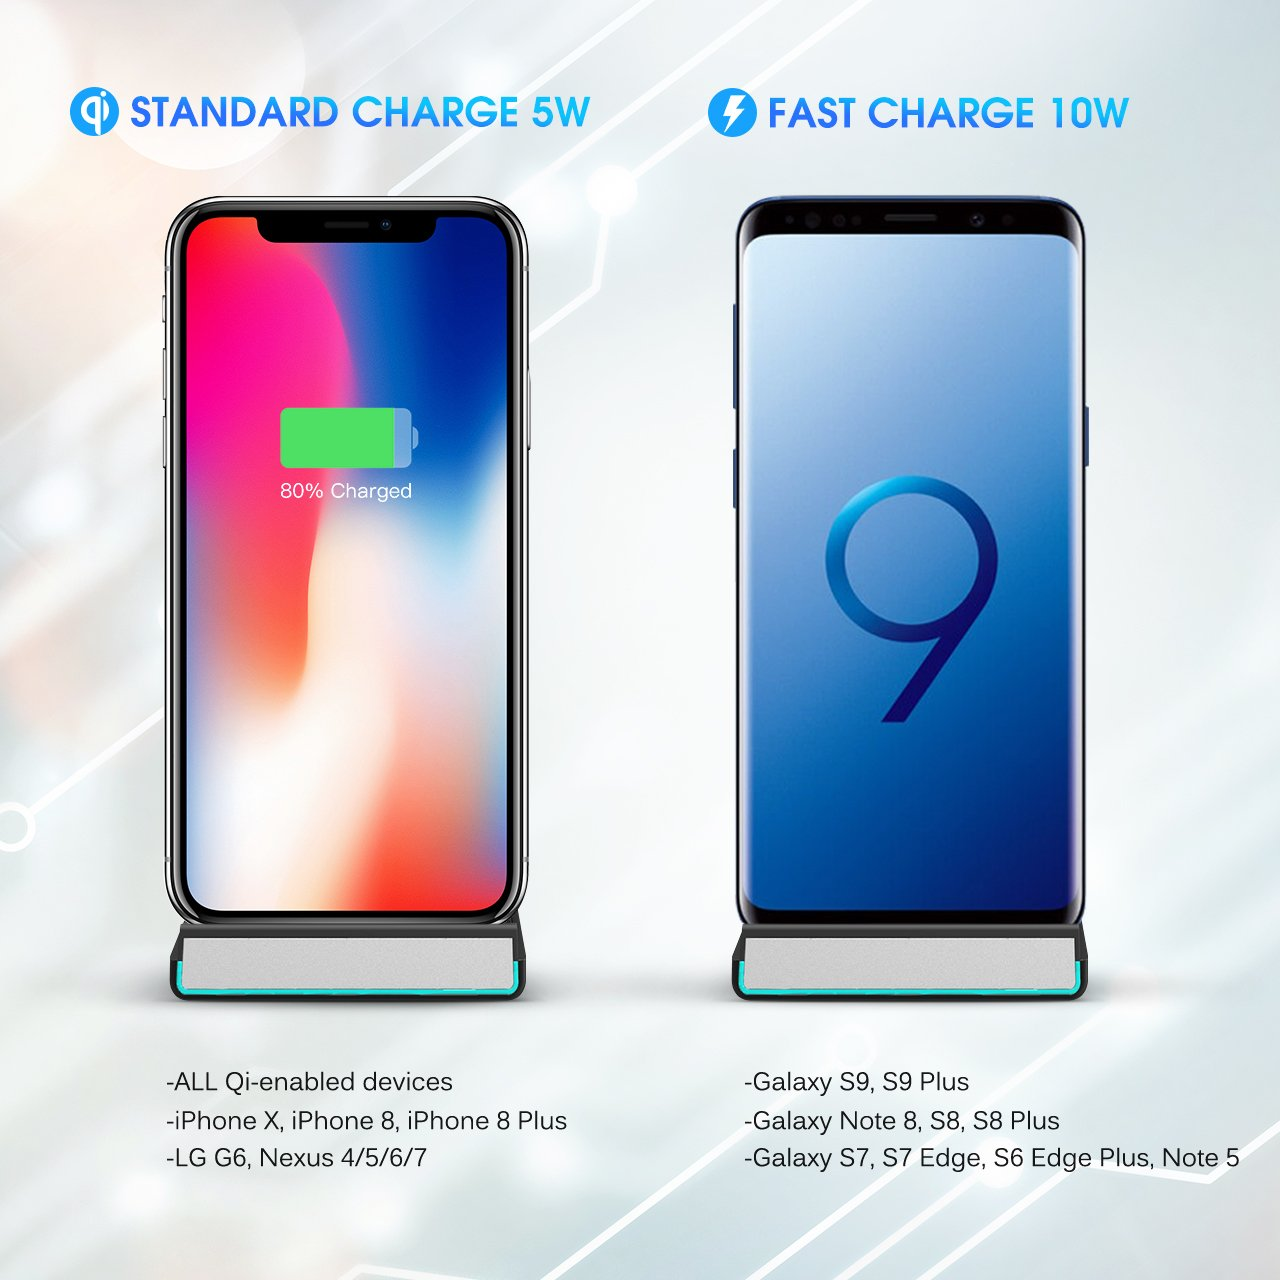 iPhone X Wireless Charger, ELLESYE 10W Fast Wireless Charger Charging Stand for Galaxy S9 S9 Plus Note 8 S8 S8 Plus S7 S7 Edge Note 5 S6 Edge, 5W Standard Charge for iPhone X/8/8 Plus (No AC Adapter) by ELLESYE (Image #2)